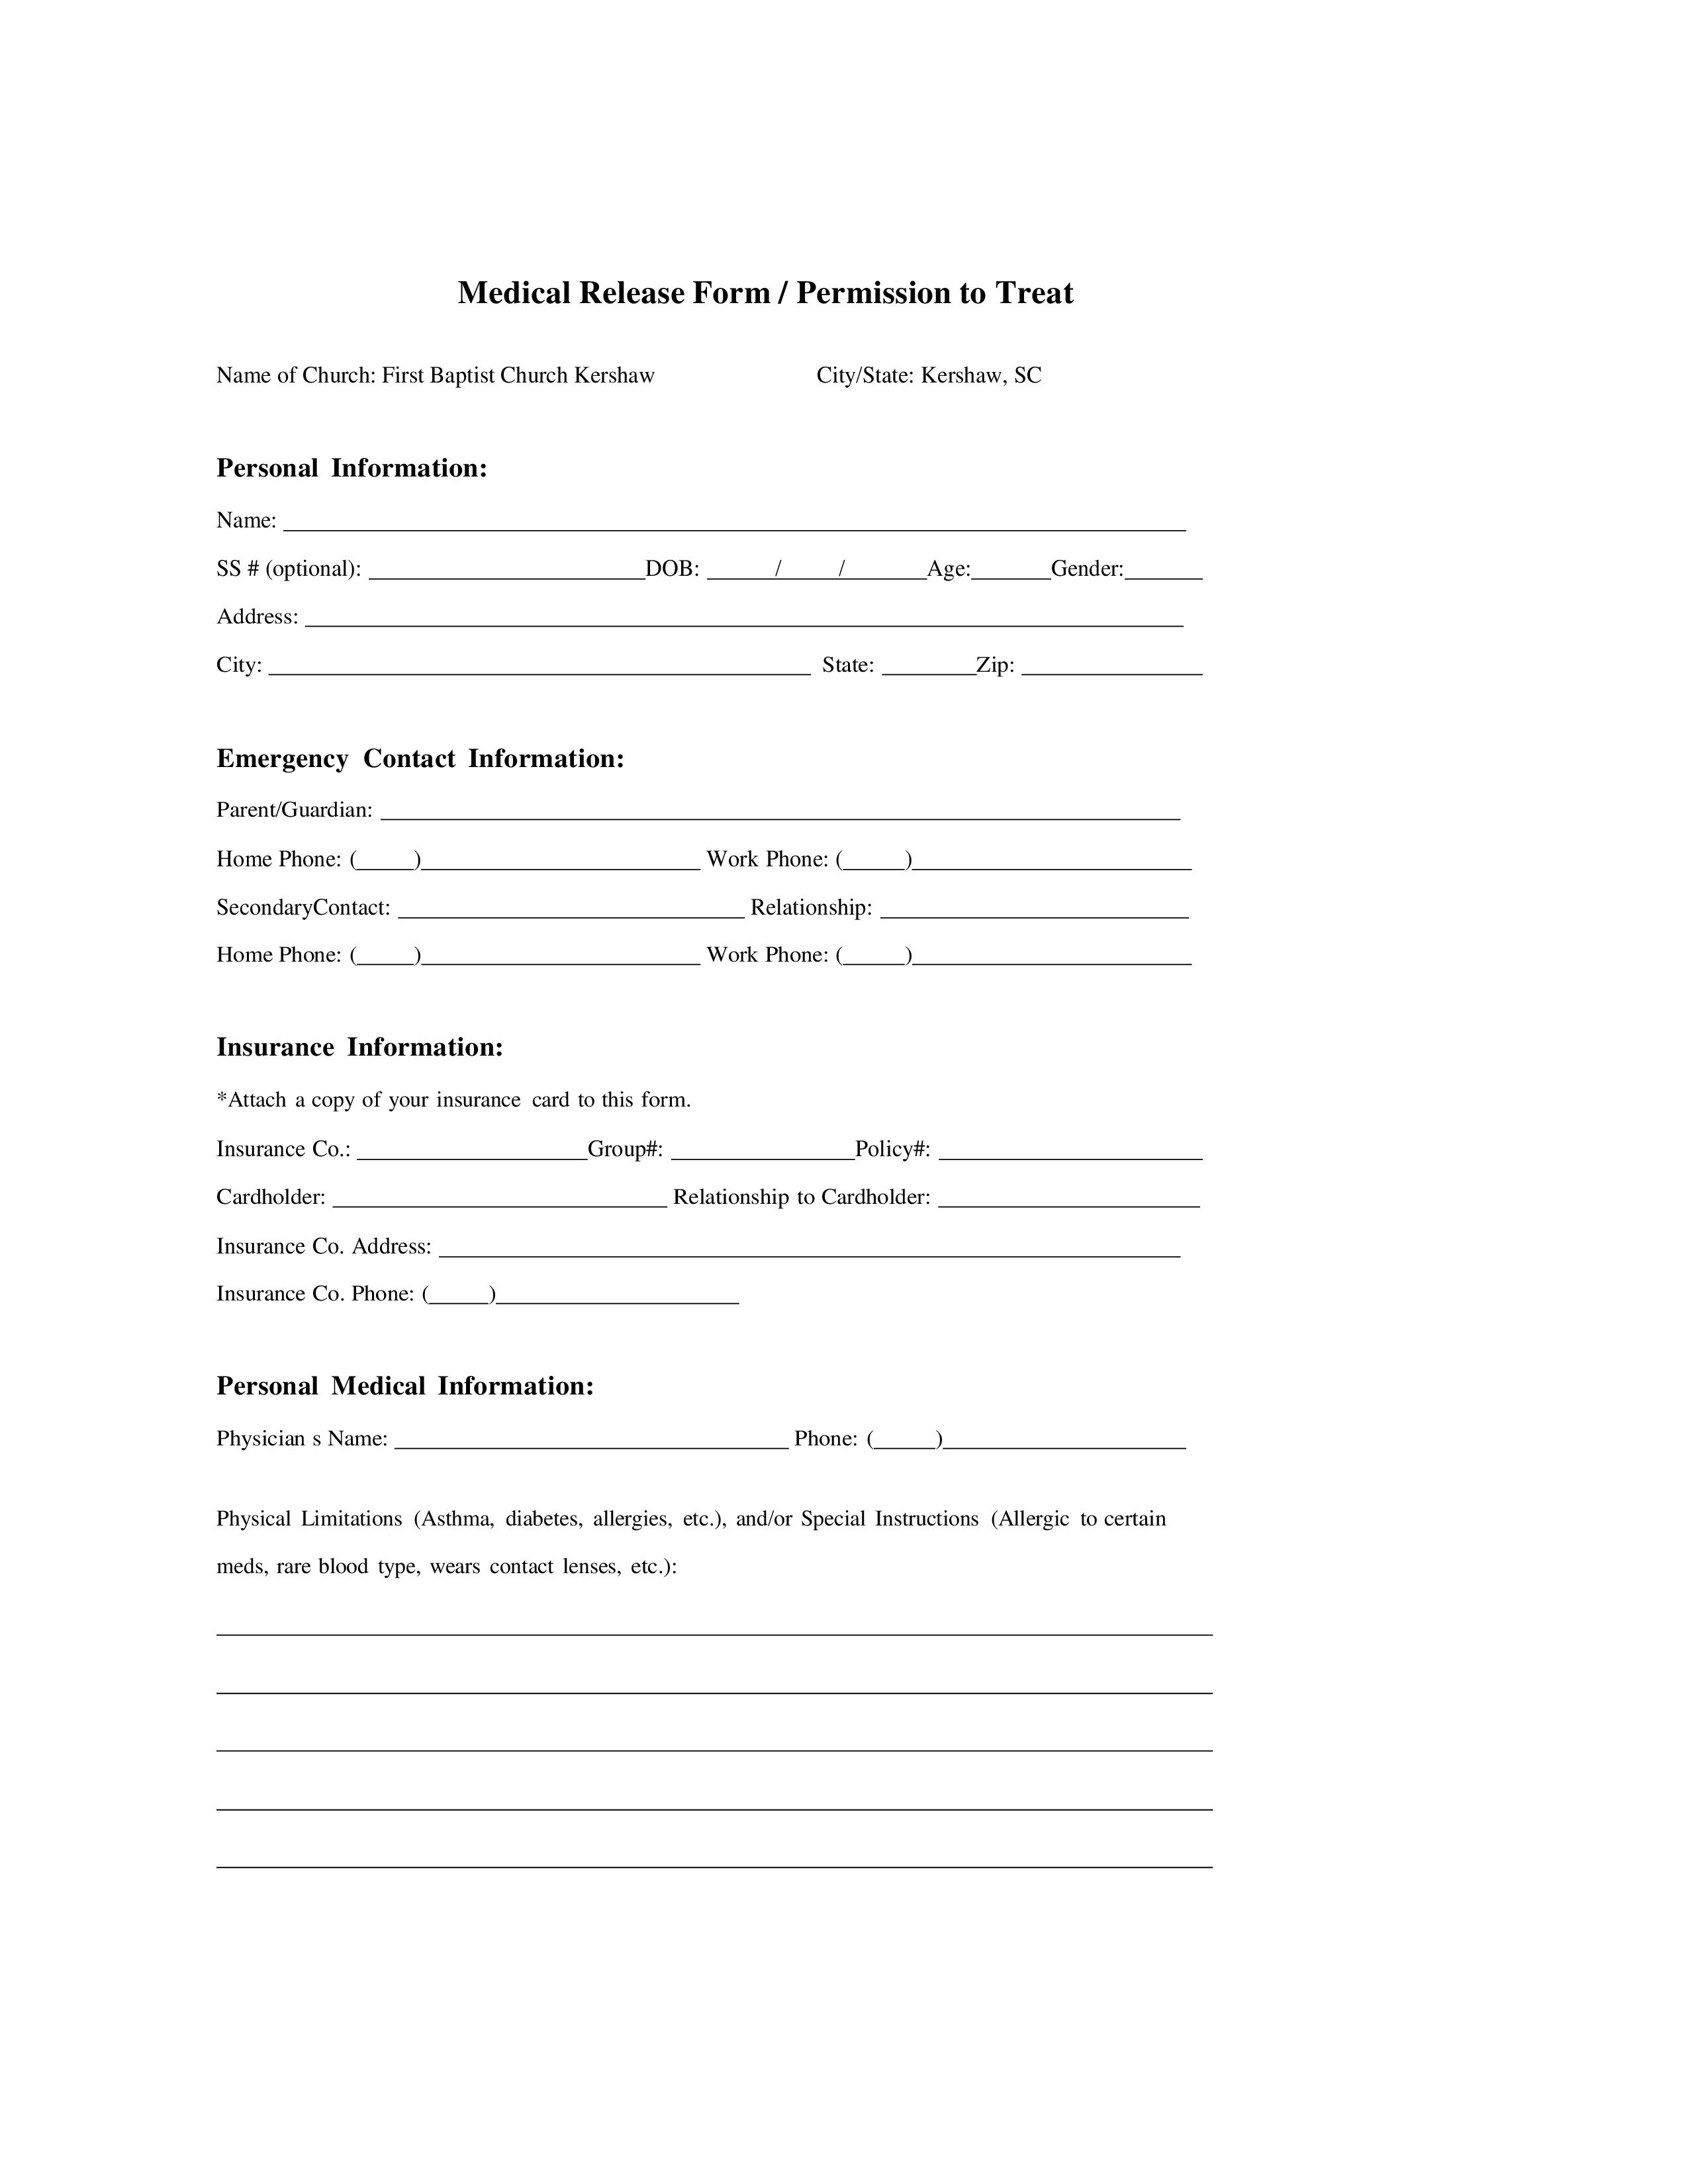 006 Simple Medical Release Form Template Example  Free Consent Uk For MinorFull